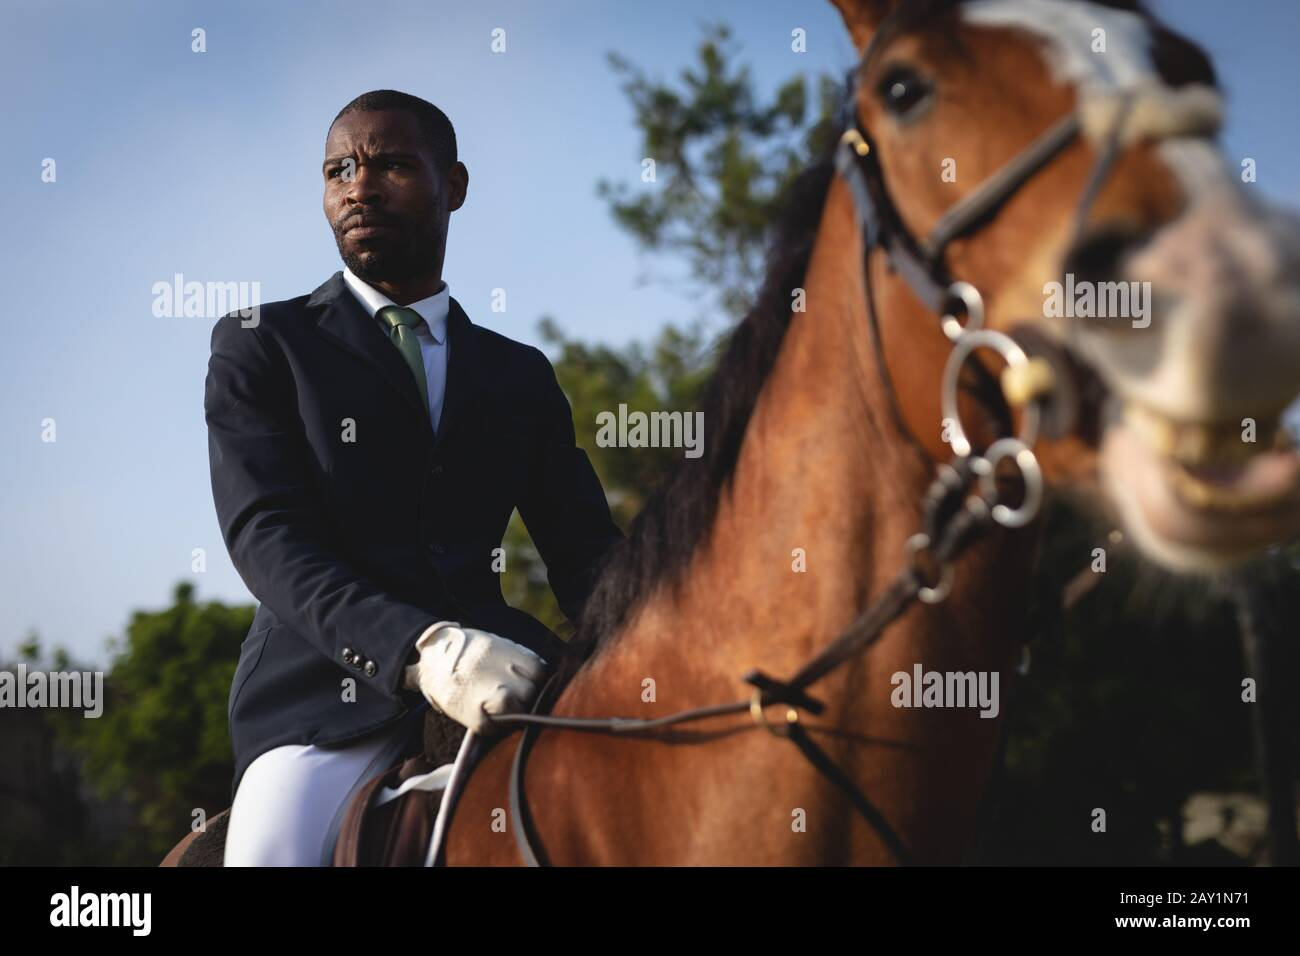 Man Riding His Dressage Horse On A Sunny Day Stock Photo Alamy